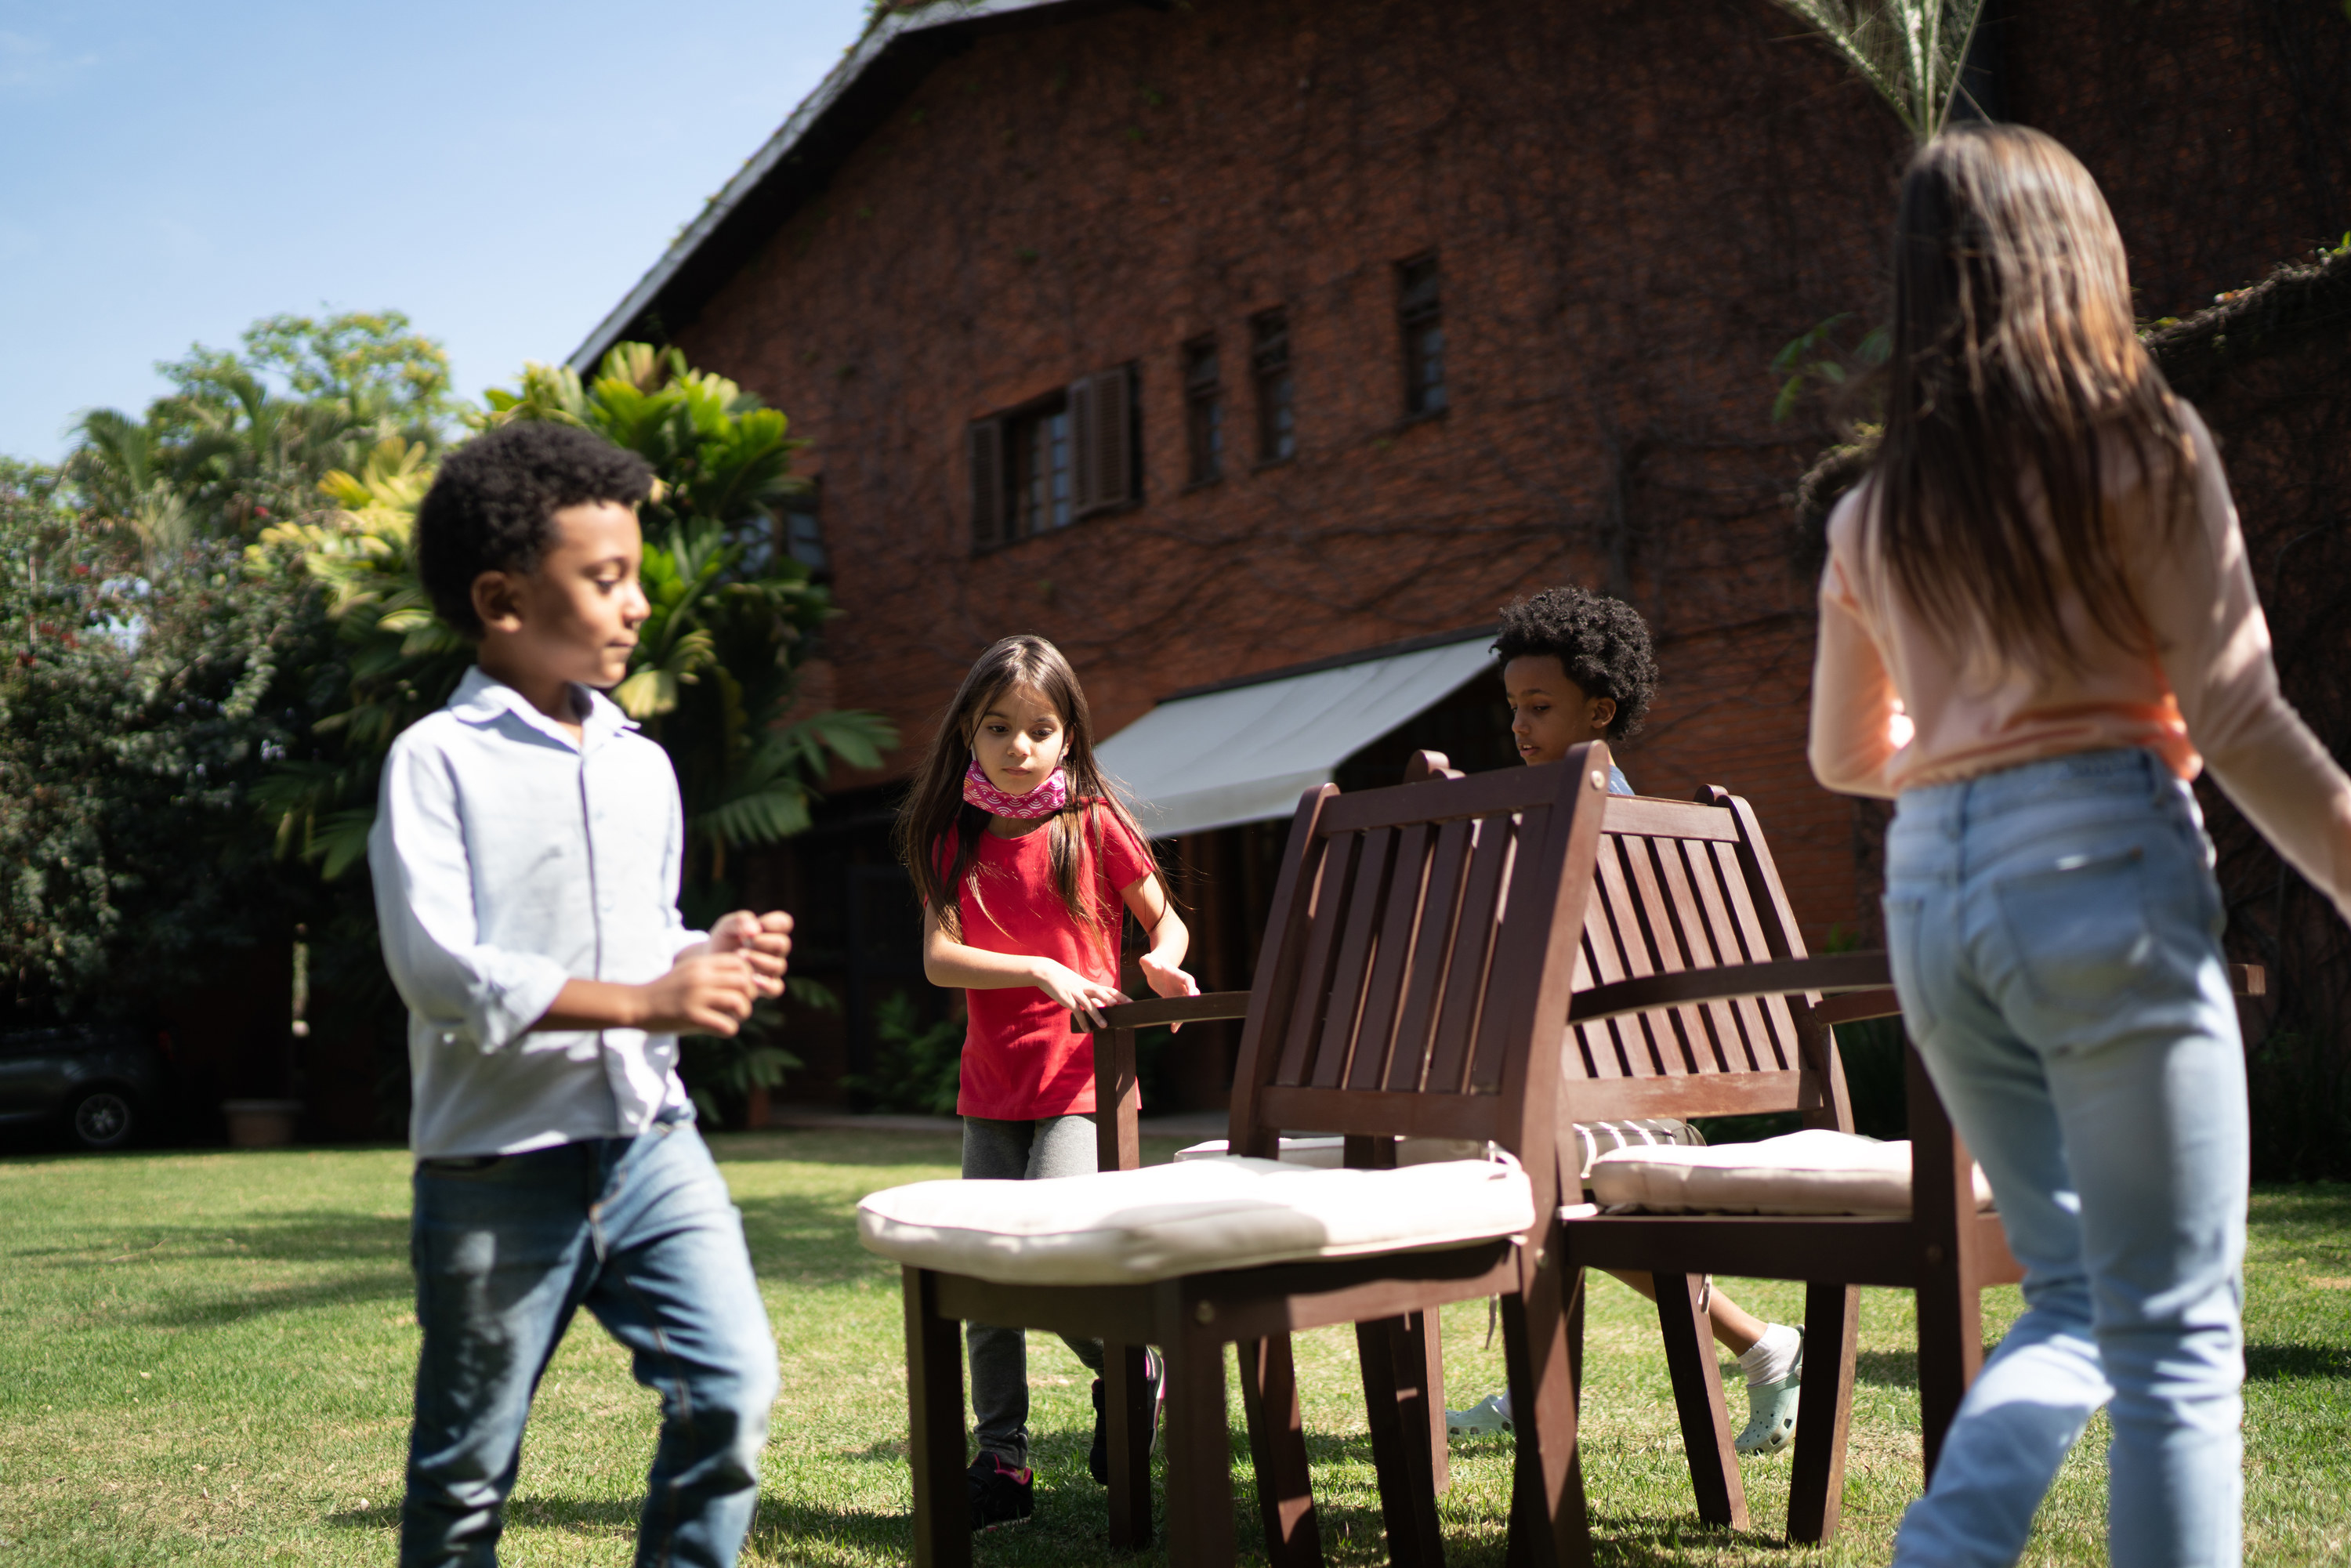 Four kids walk around a group of three chairs in a backyard.